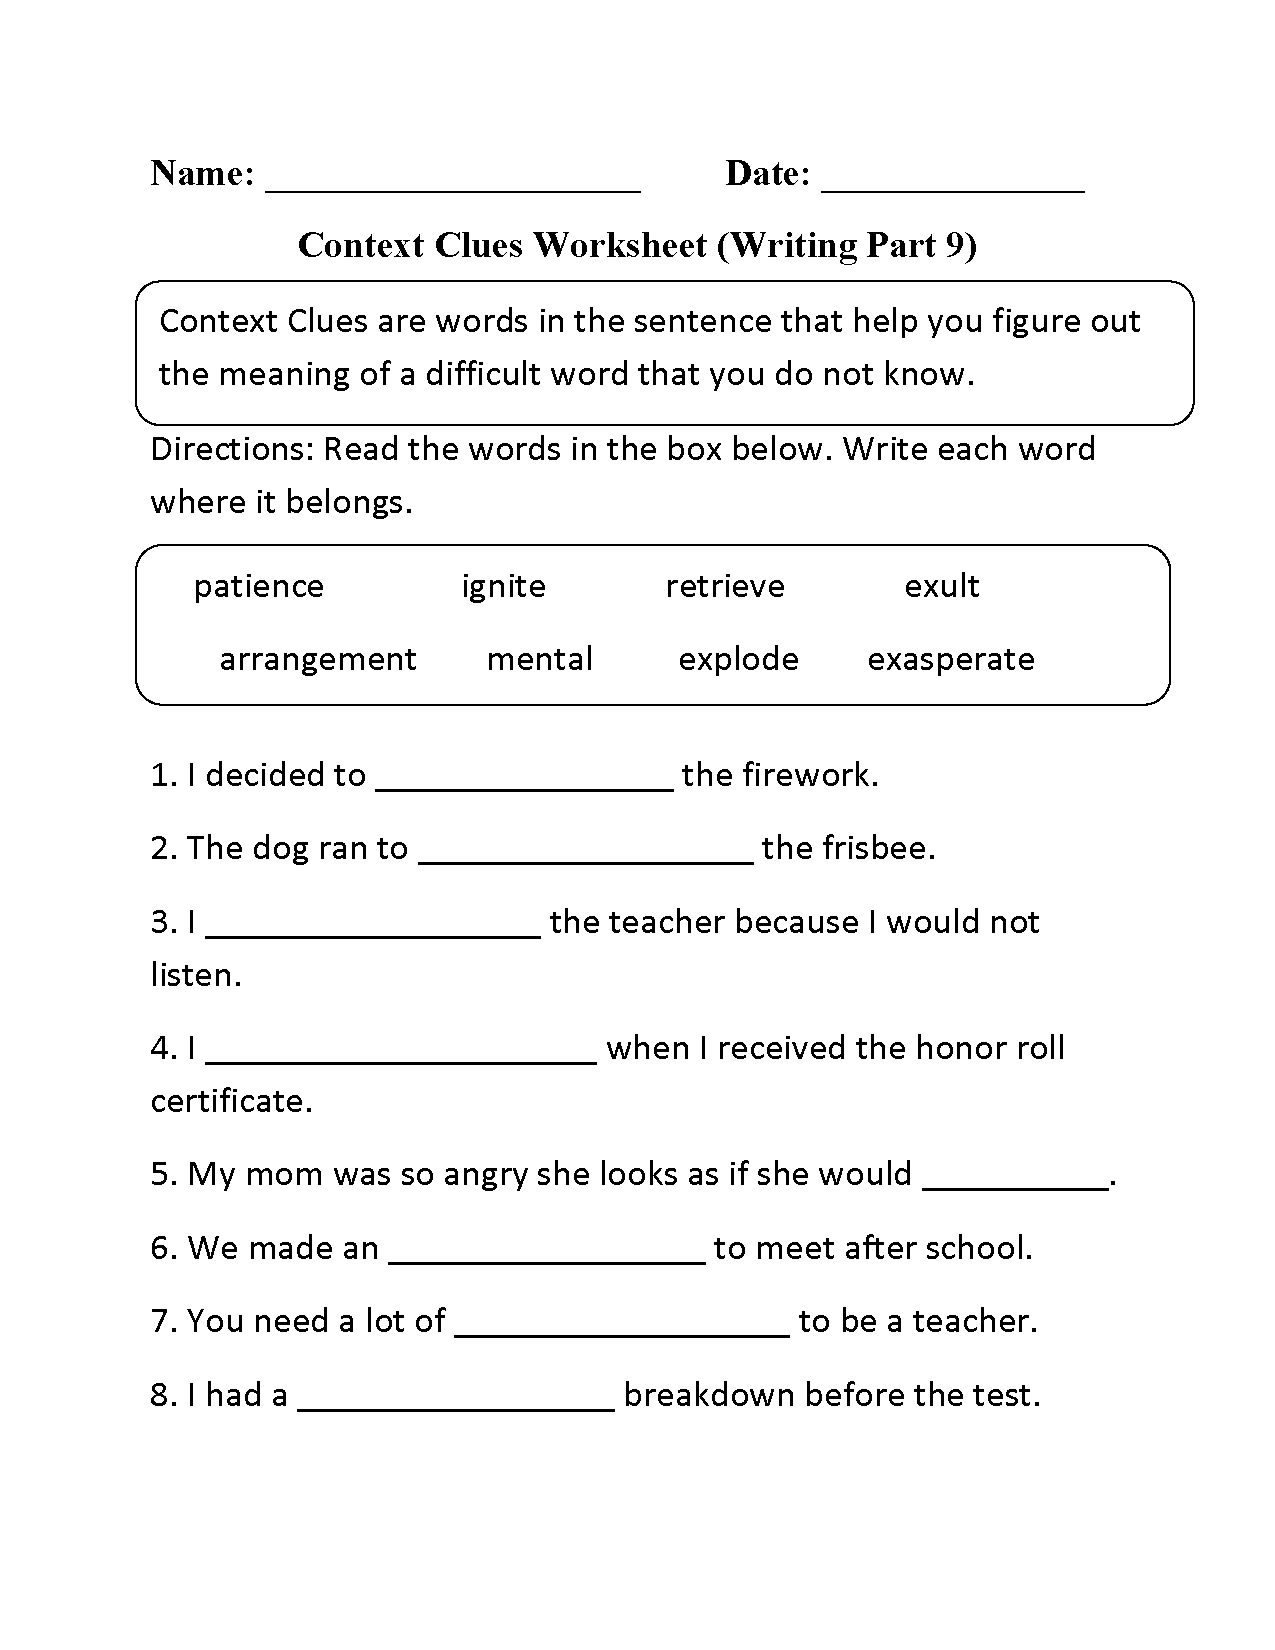 Synonyms Worksheet Context Clues